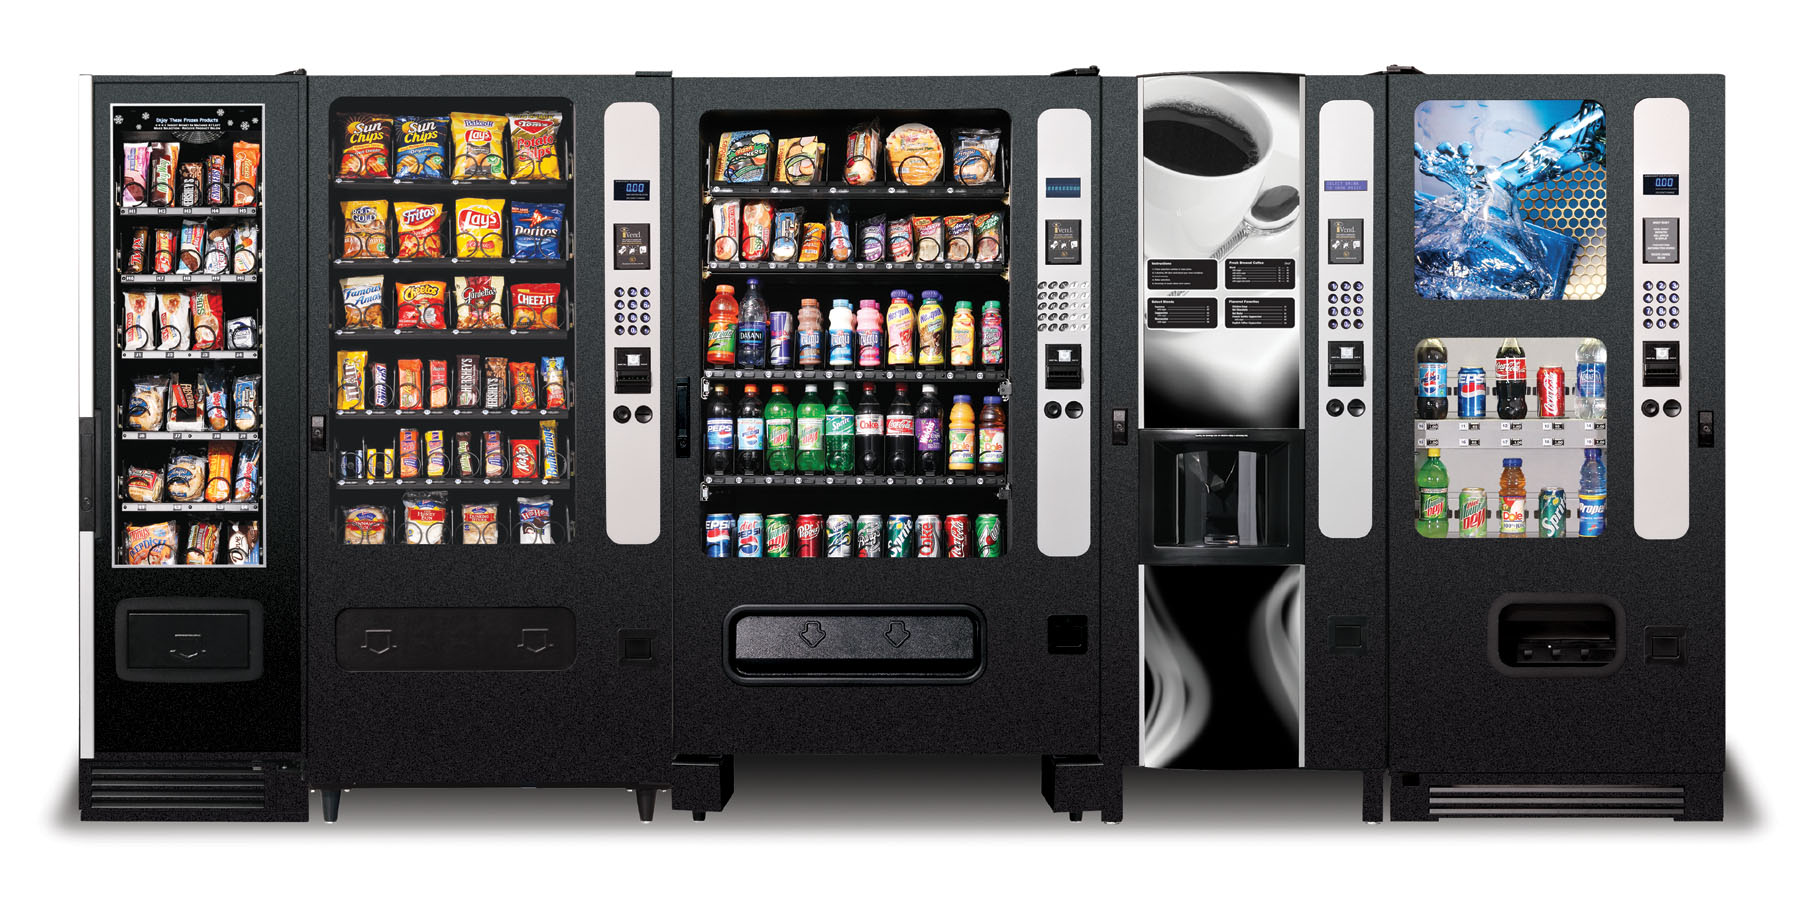 KBD Vending Services